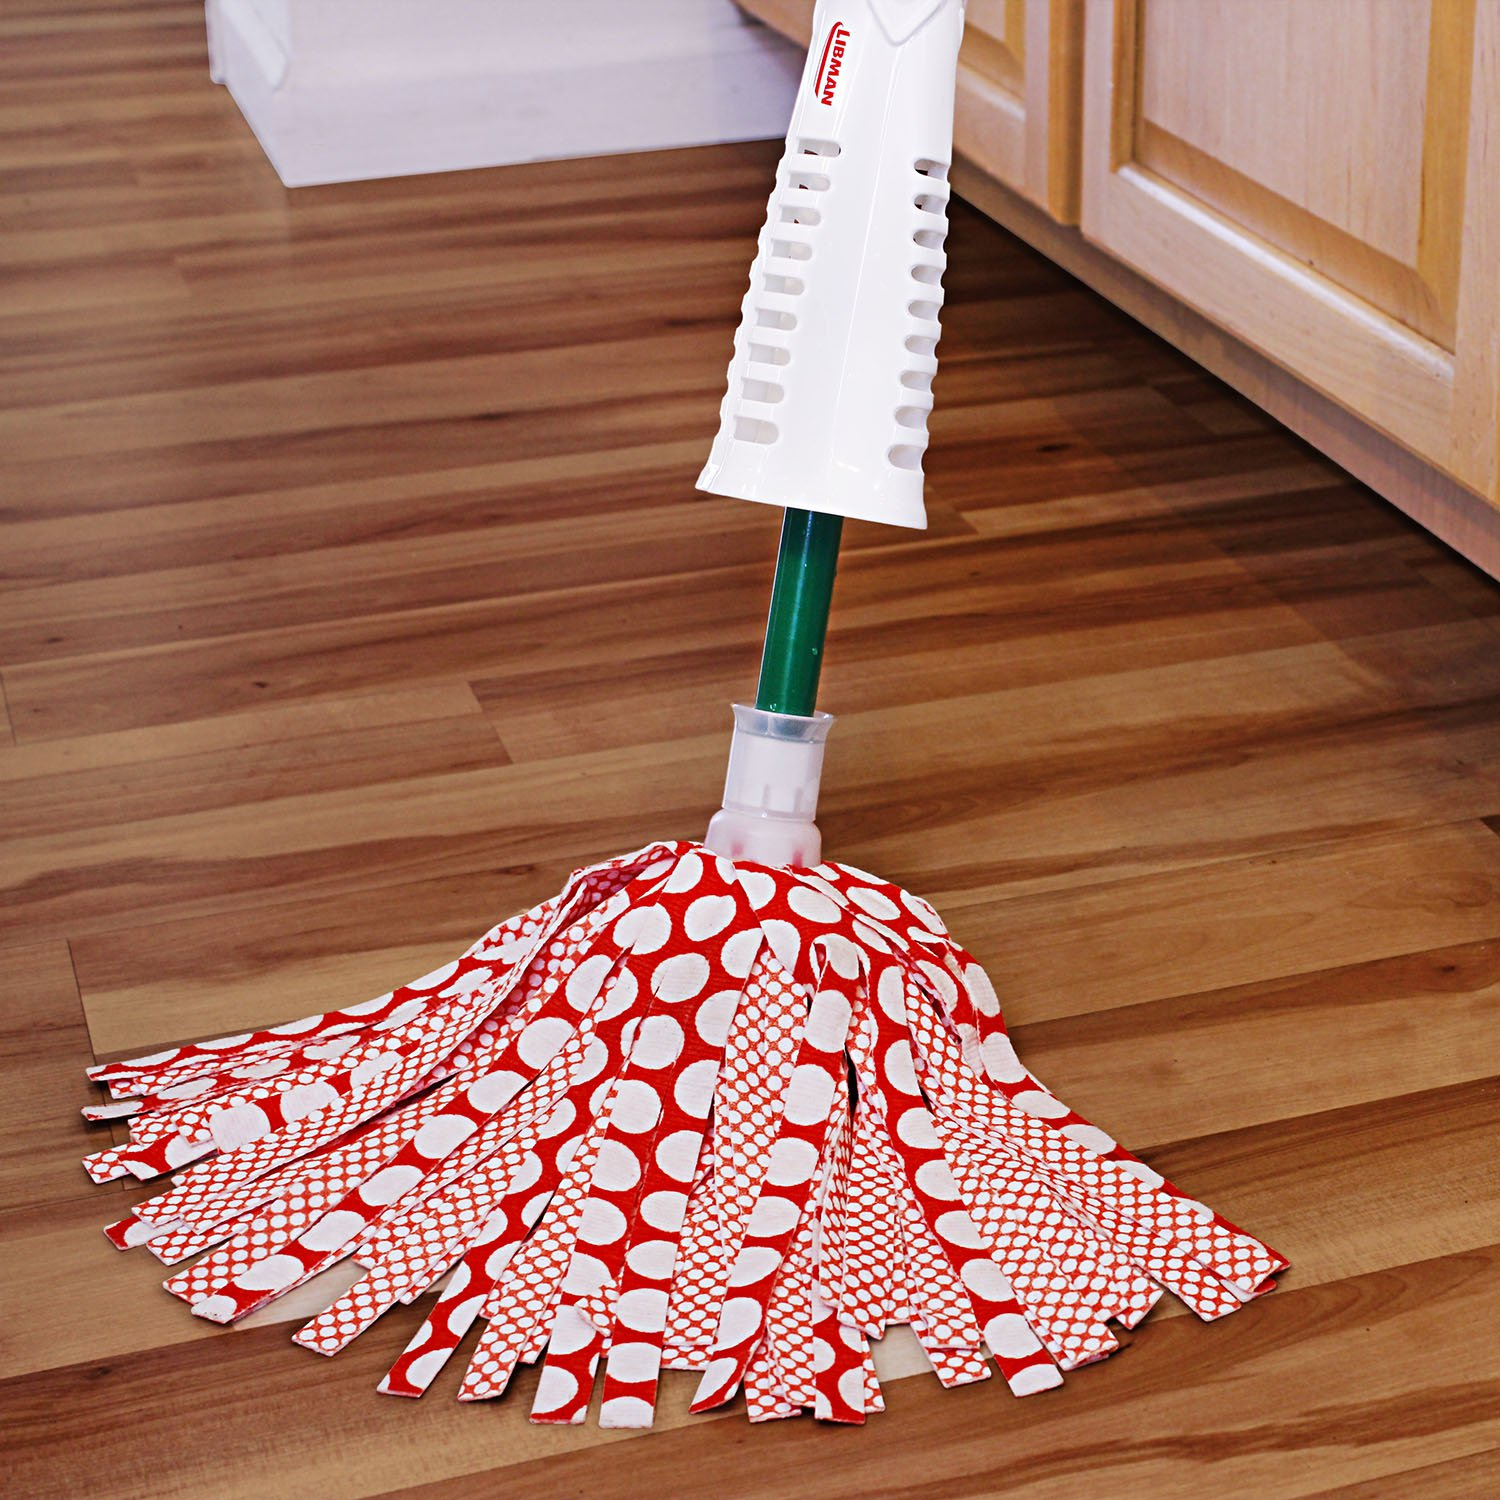 Twist and shout mop review - Twist And Shout Mop Review 54